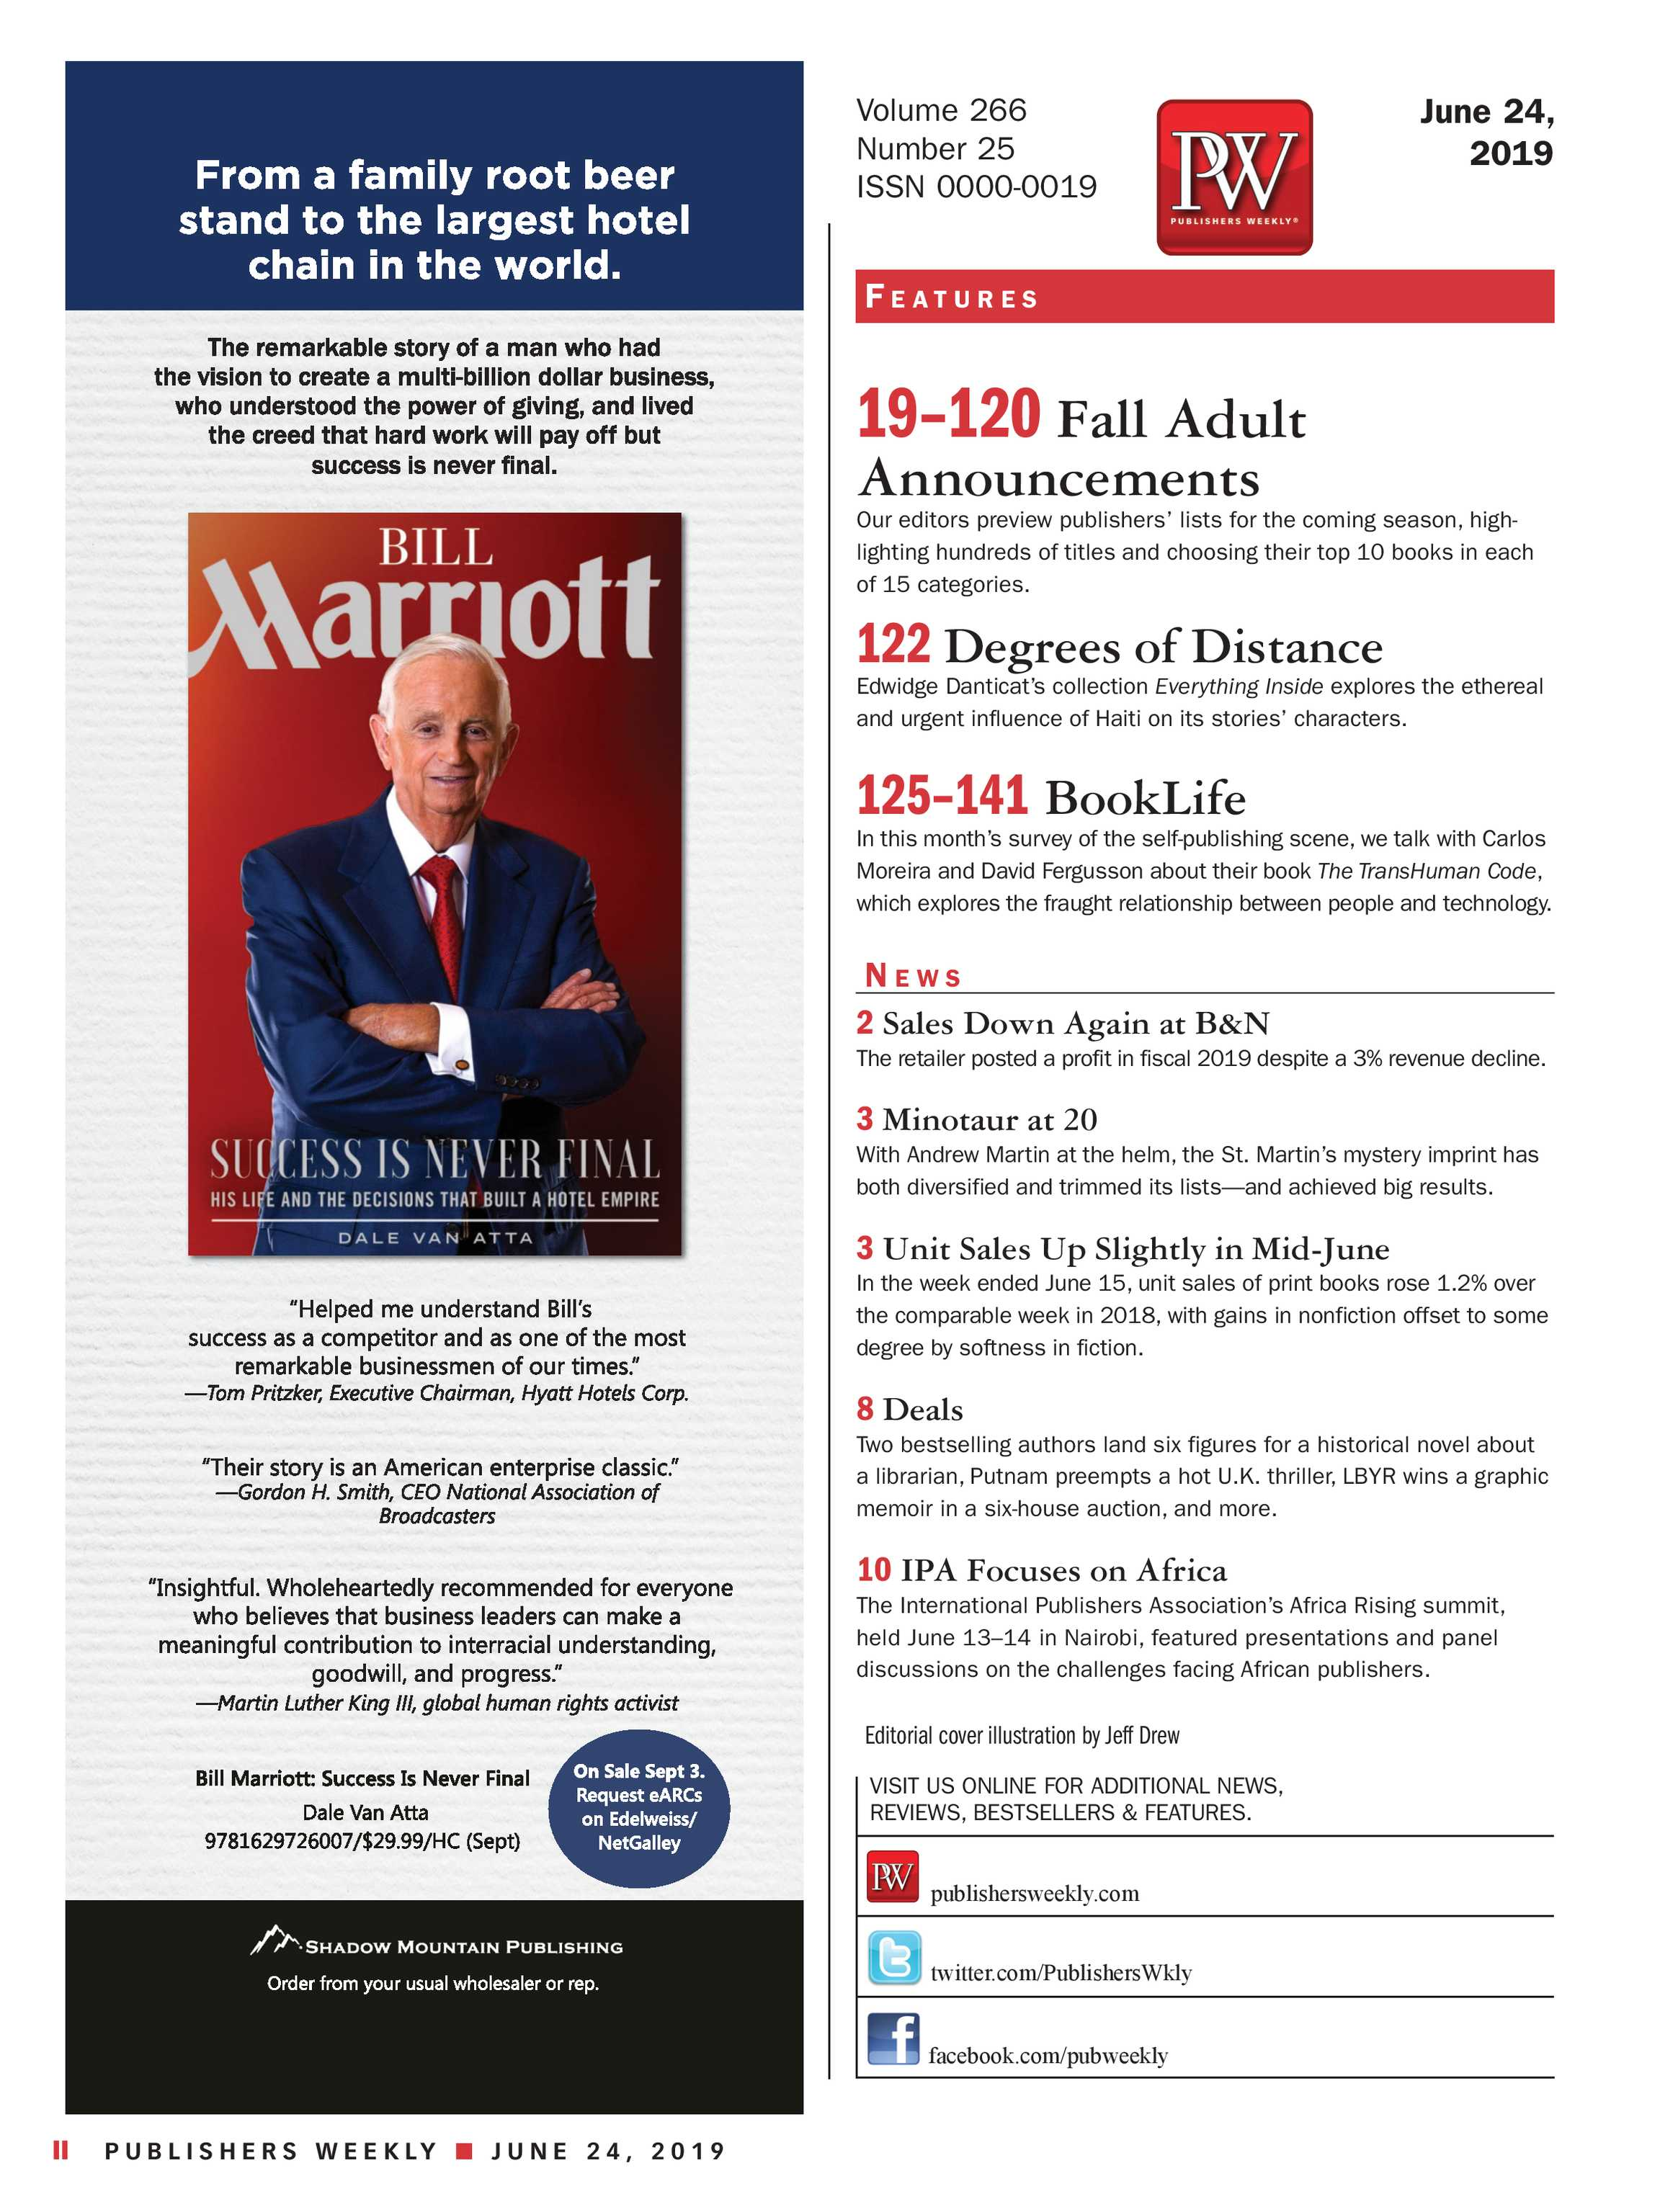 Publishers Weekly - June 24, 2019 - page II